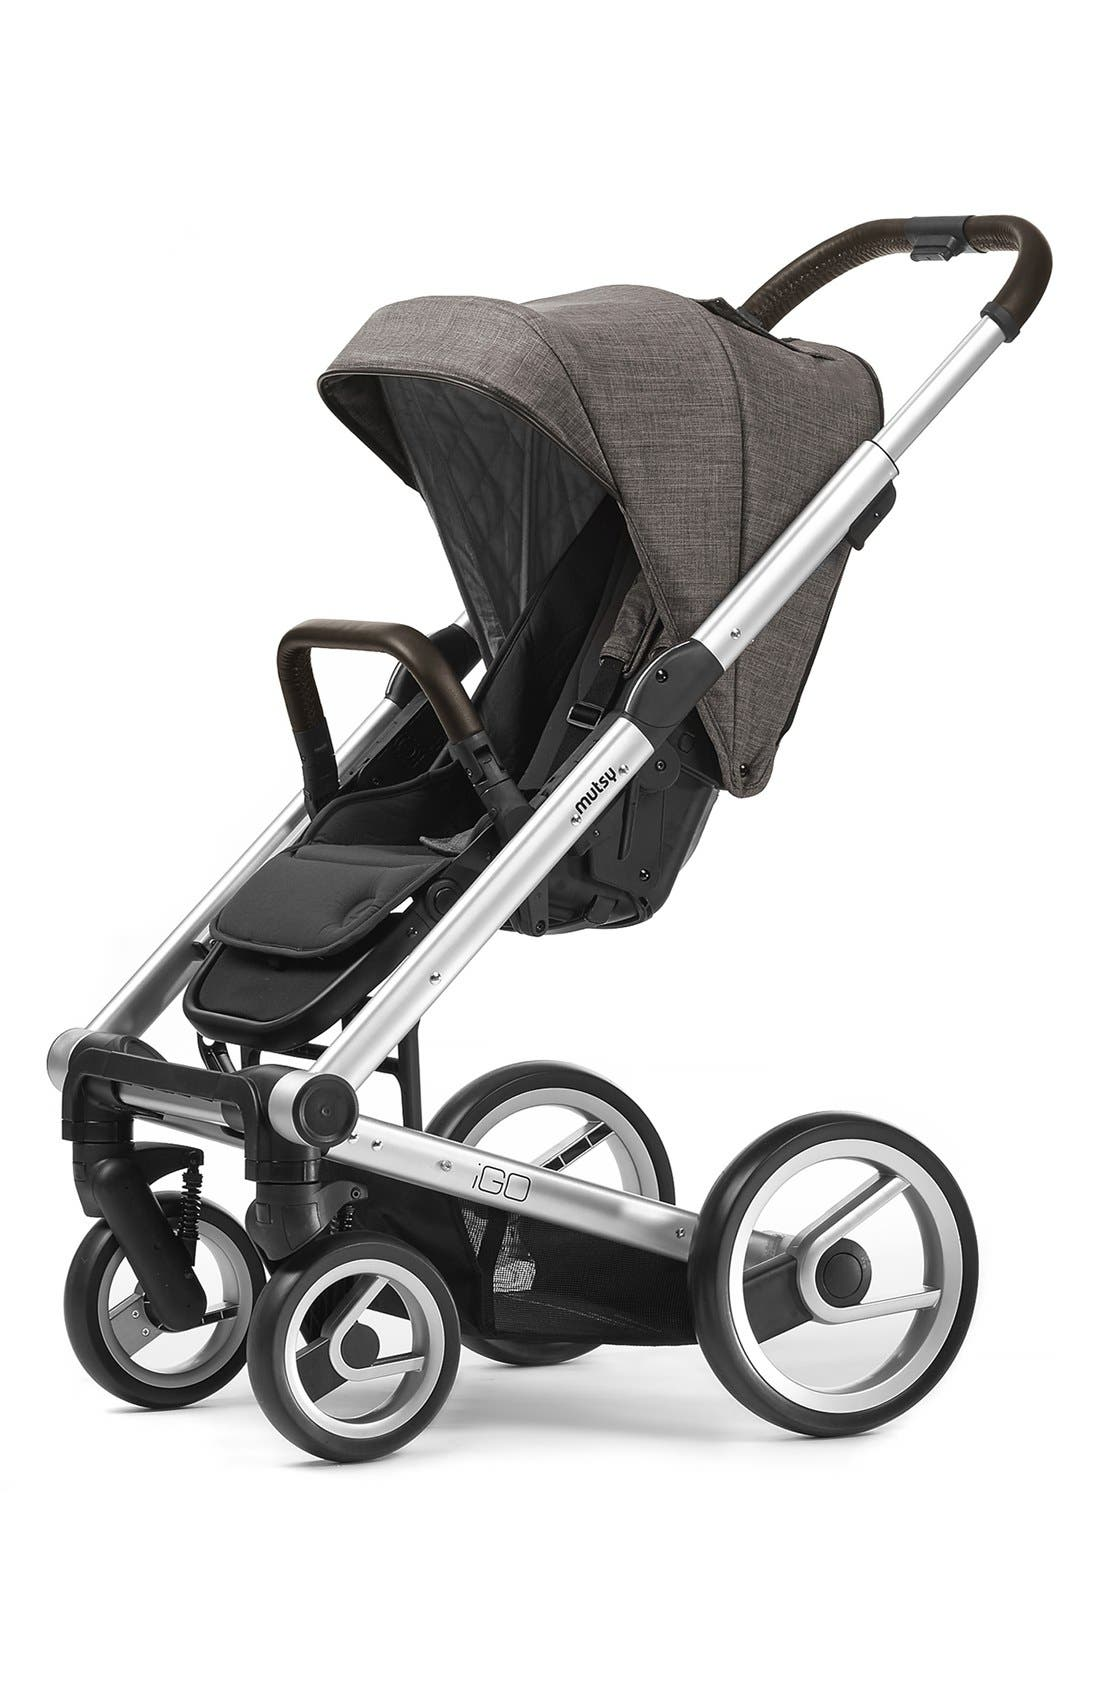 Igo - Farmer Earth Stroller,                             Main thumbnail 1, color,                             211